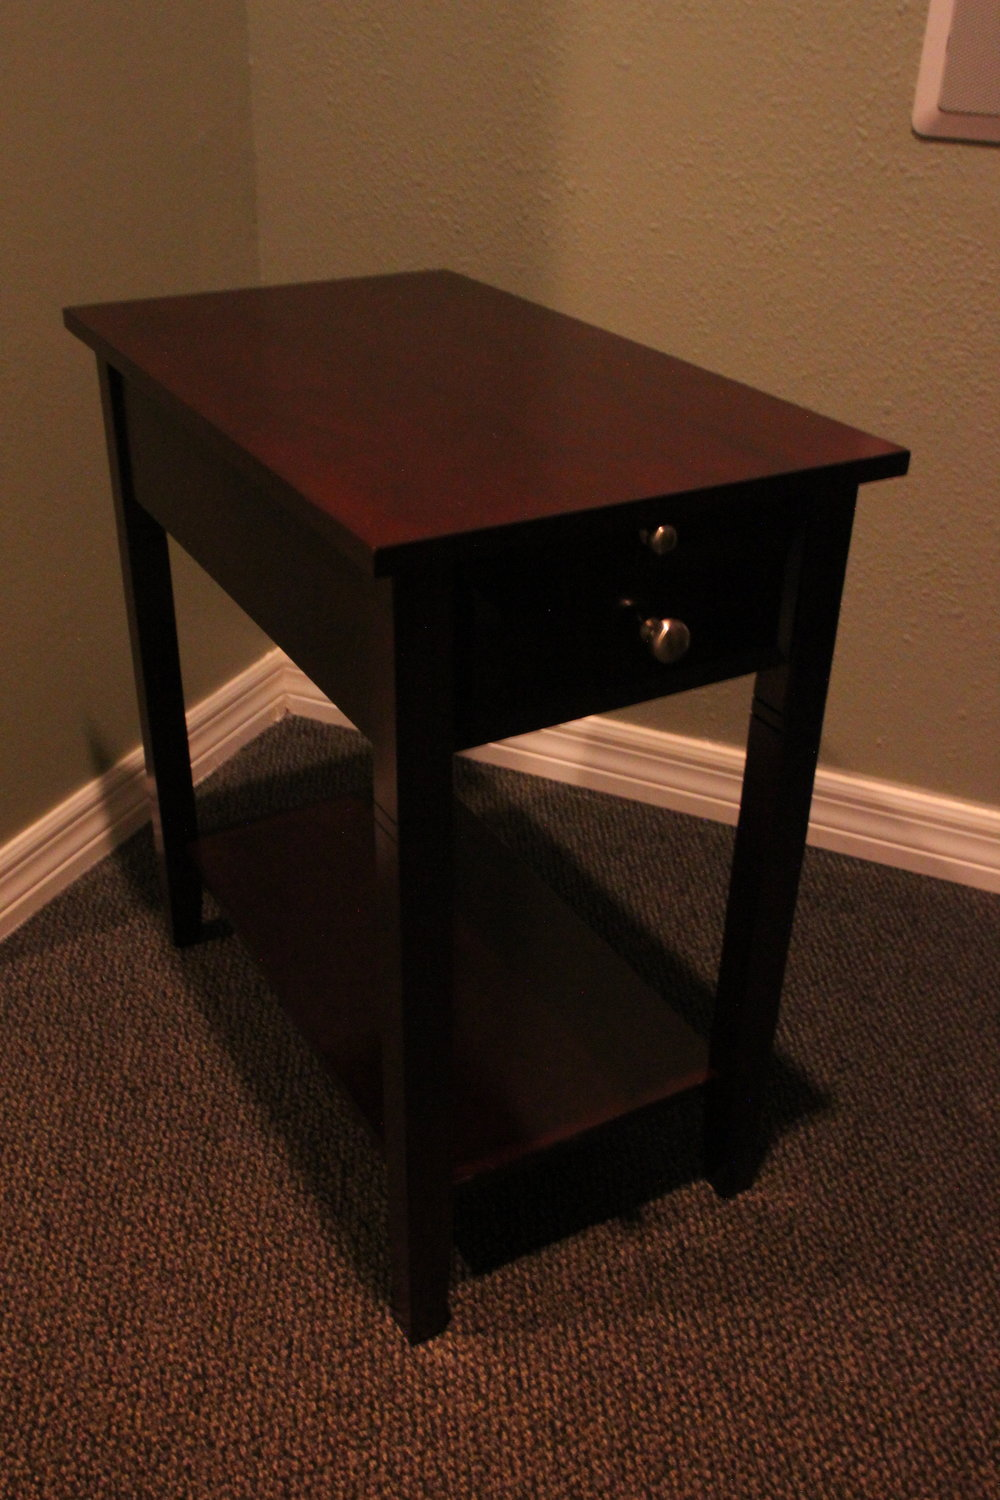 Side Table - $15